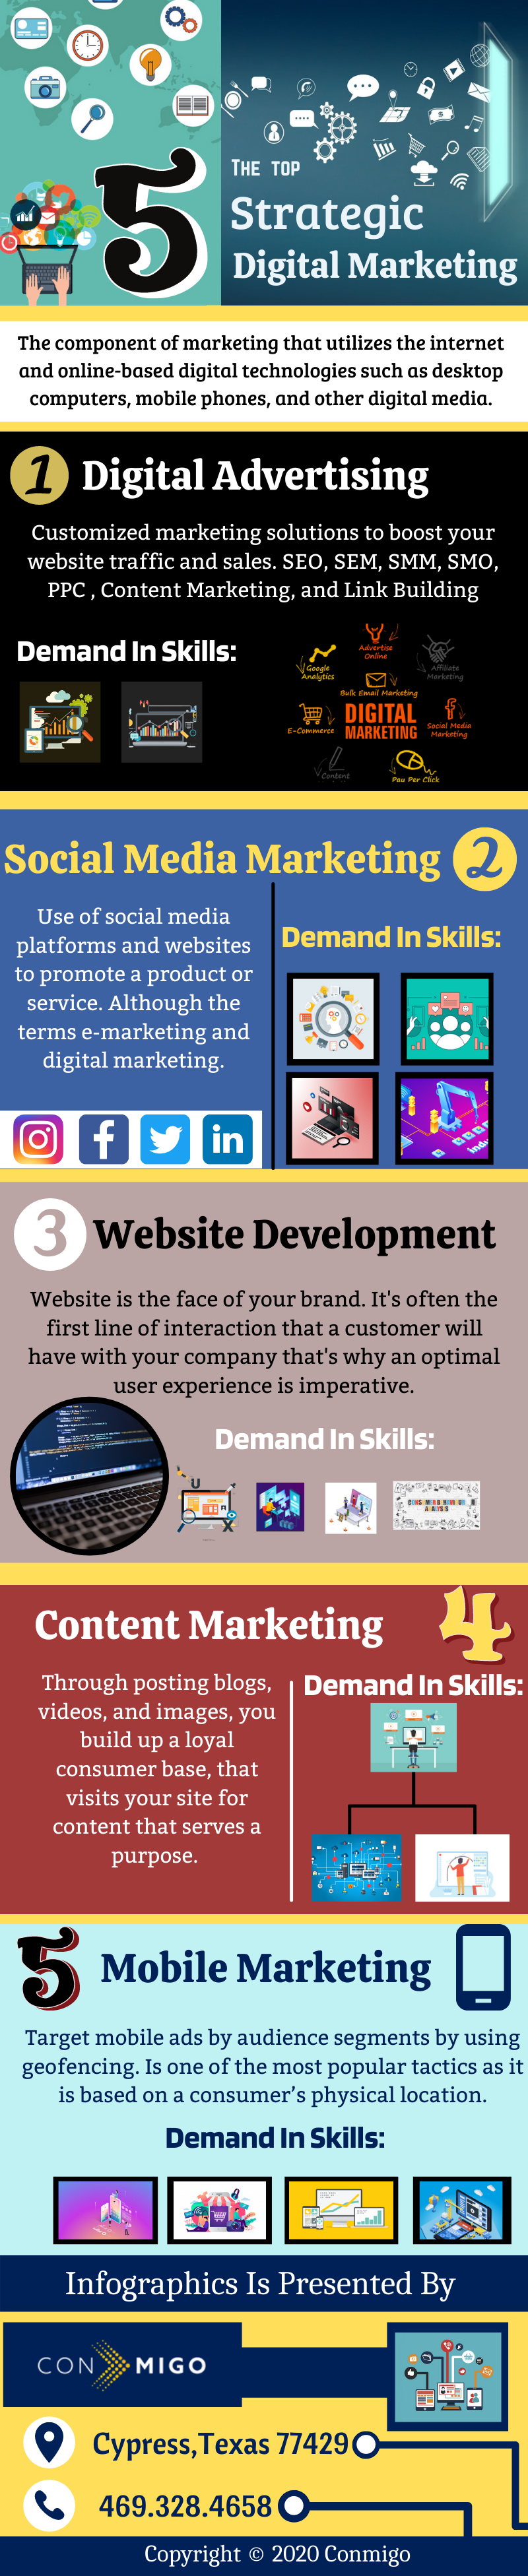 Digital Marketing Services for Your Business